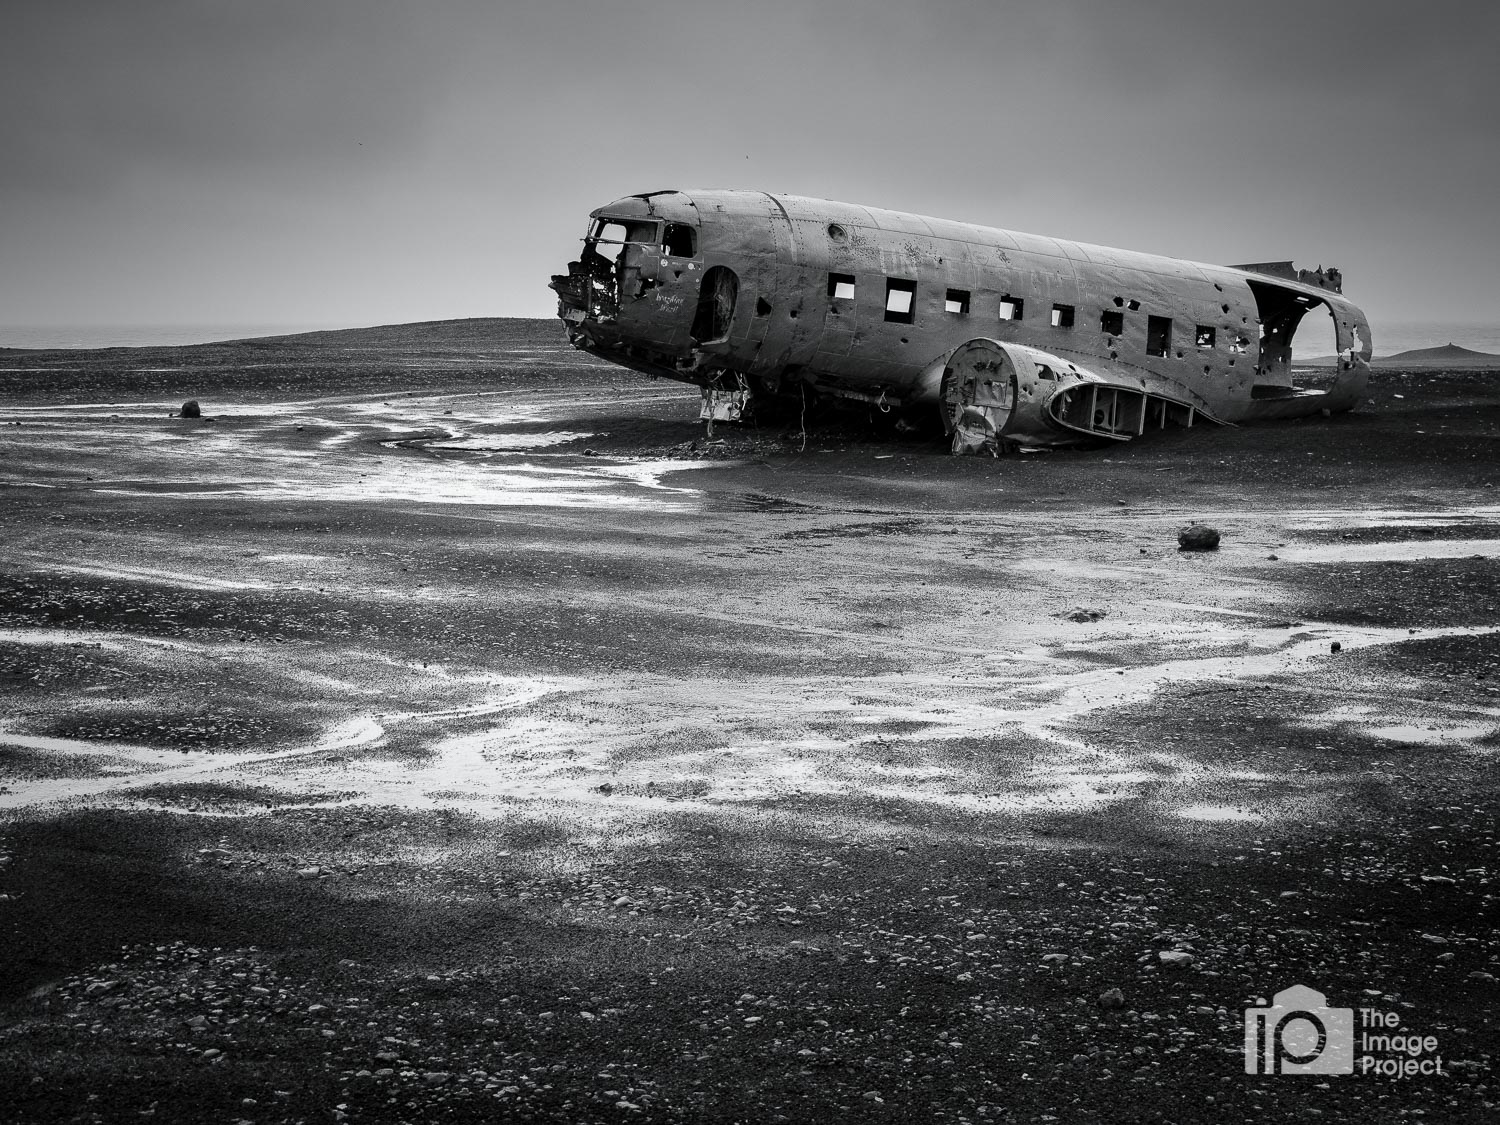 Plane wreck of Douglas D4D-8 number 17171 abandoned on south Icelandic beach